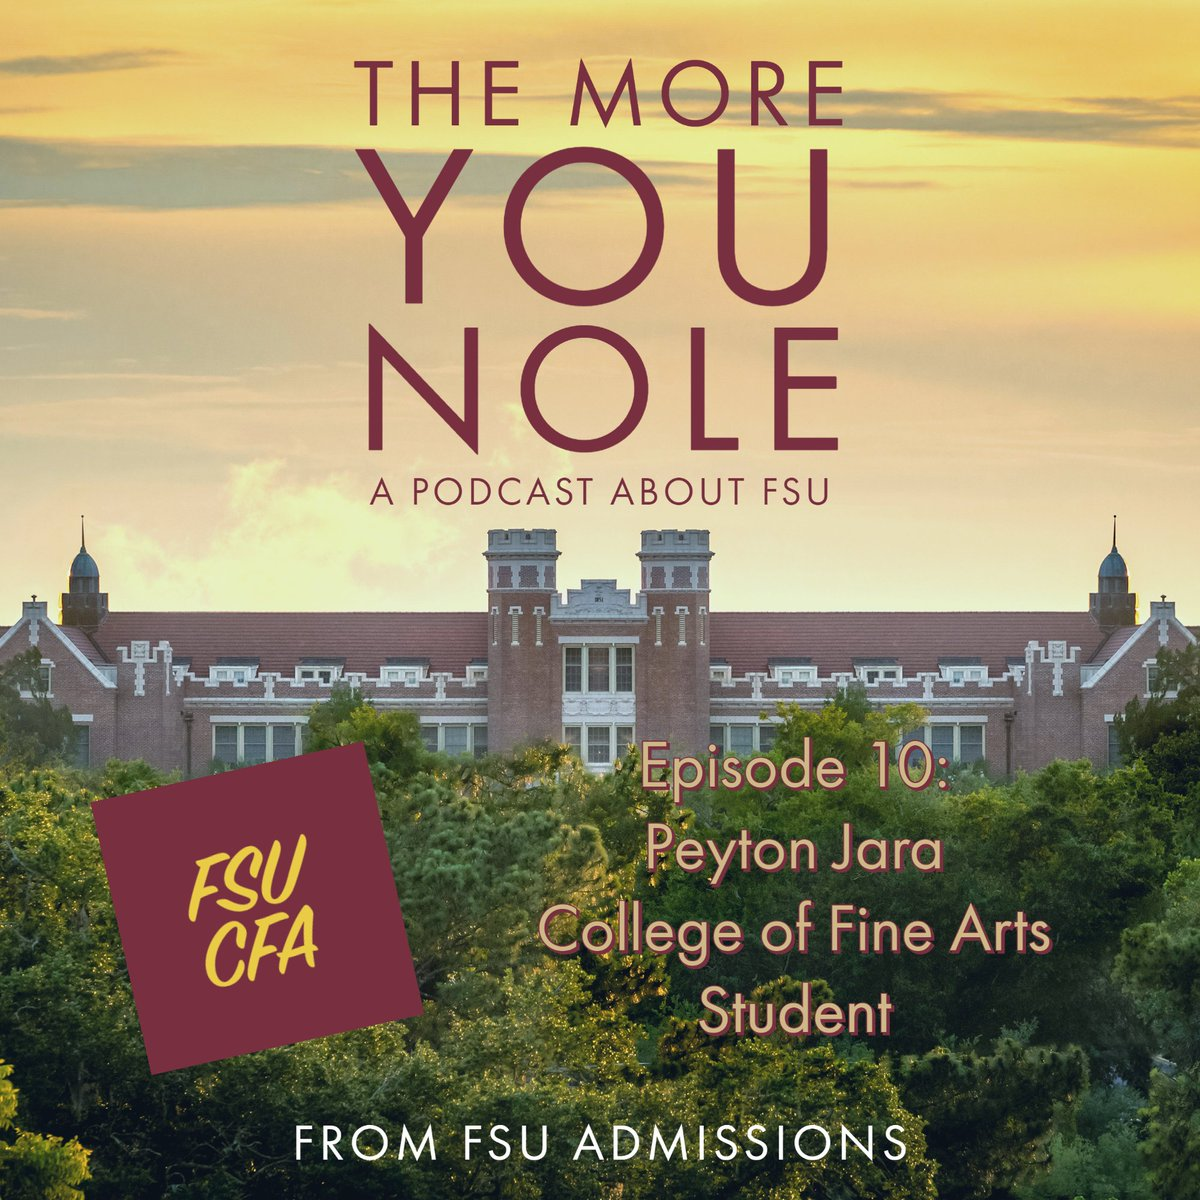 Fsu Admissions On Twitter It S New Podcast Day On This Week S Themoreyounole We Have Our First Ever Student Guest Peyton Jara Of The College Of Fine Arts Cfafsu Interior Architecture Design